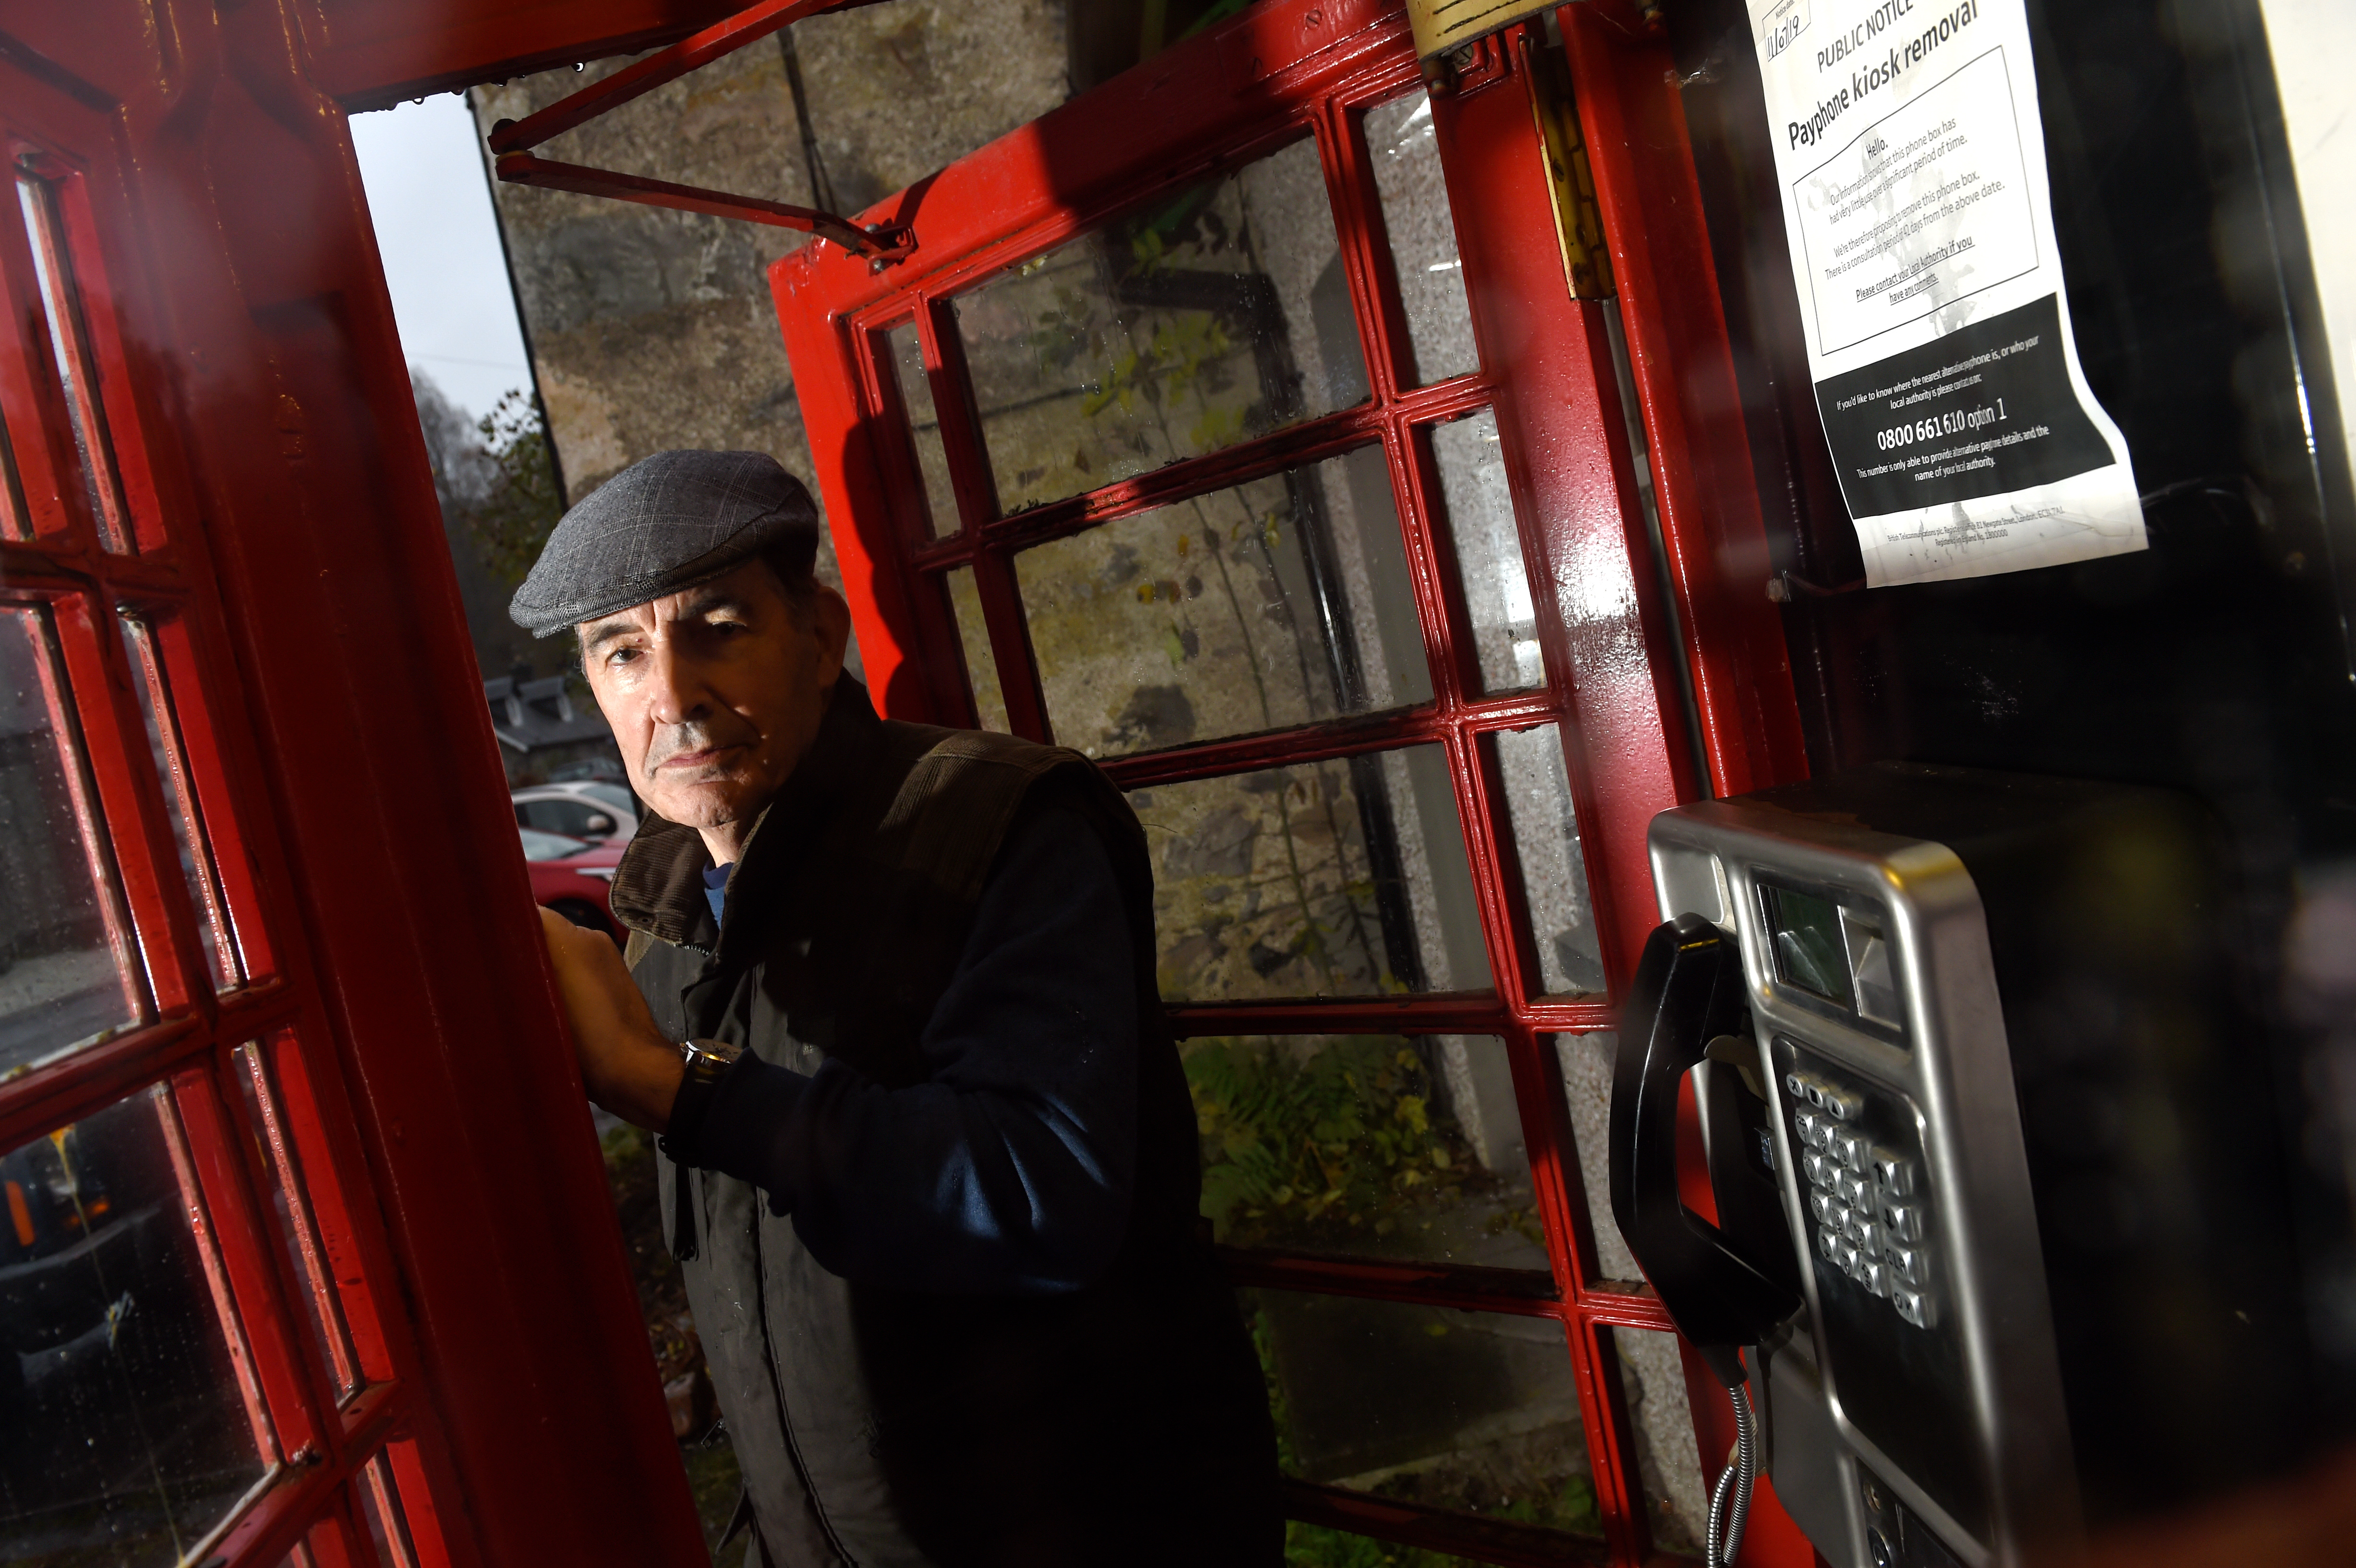 Peter Small, owner of the Tomich Hotel in the adjacent red telephone box, targeted for closure in 2019. Picture by Sandy McCook.